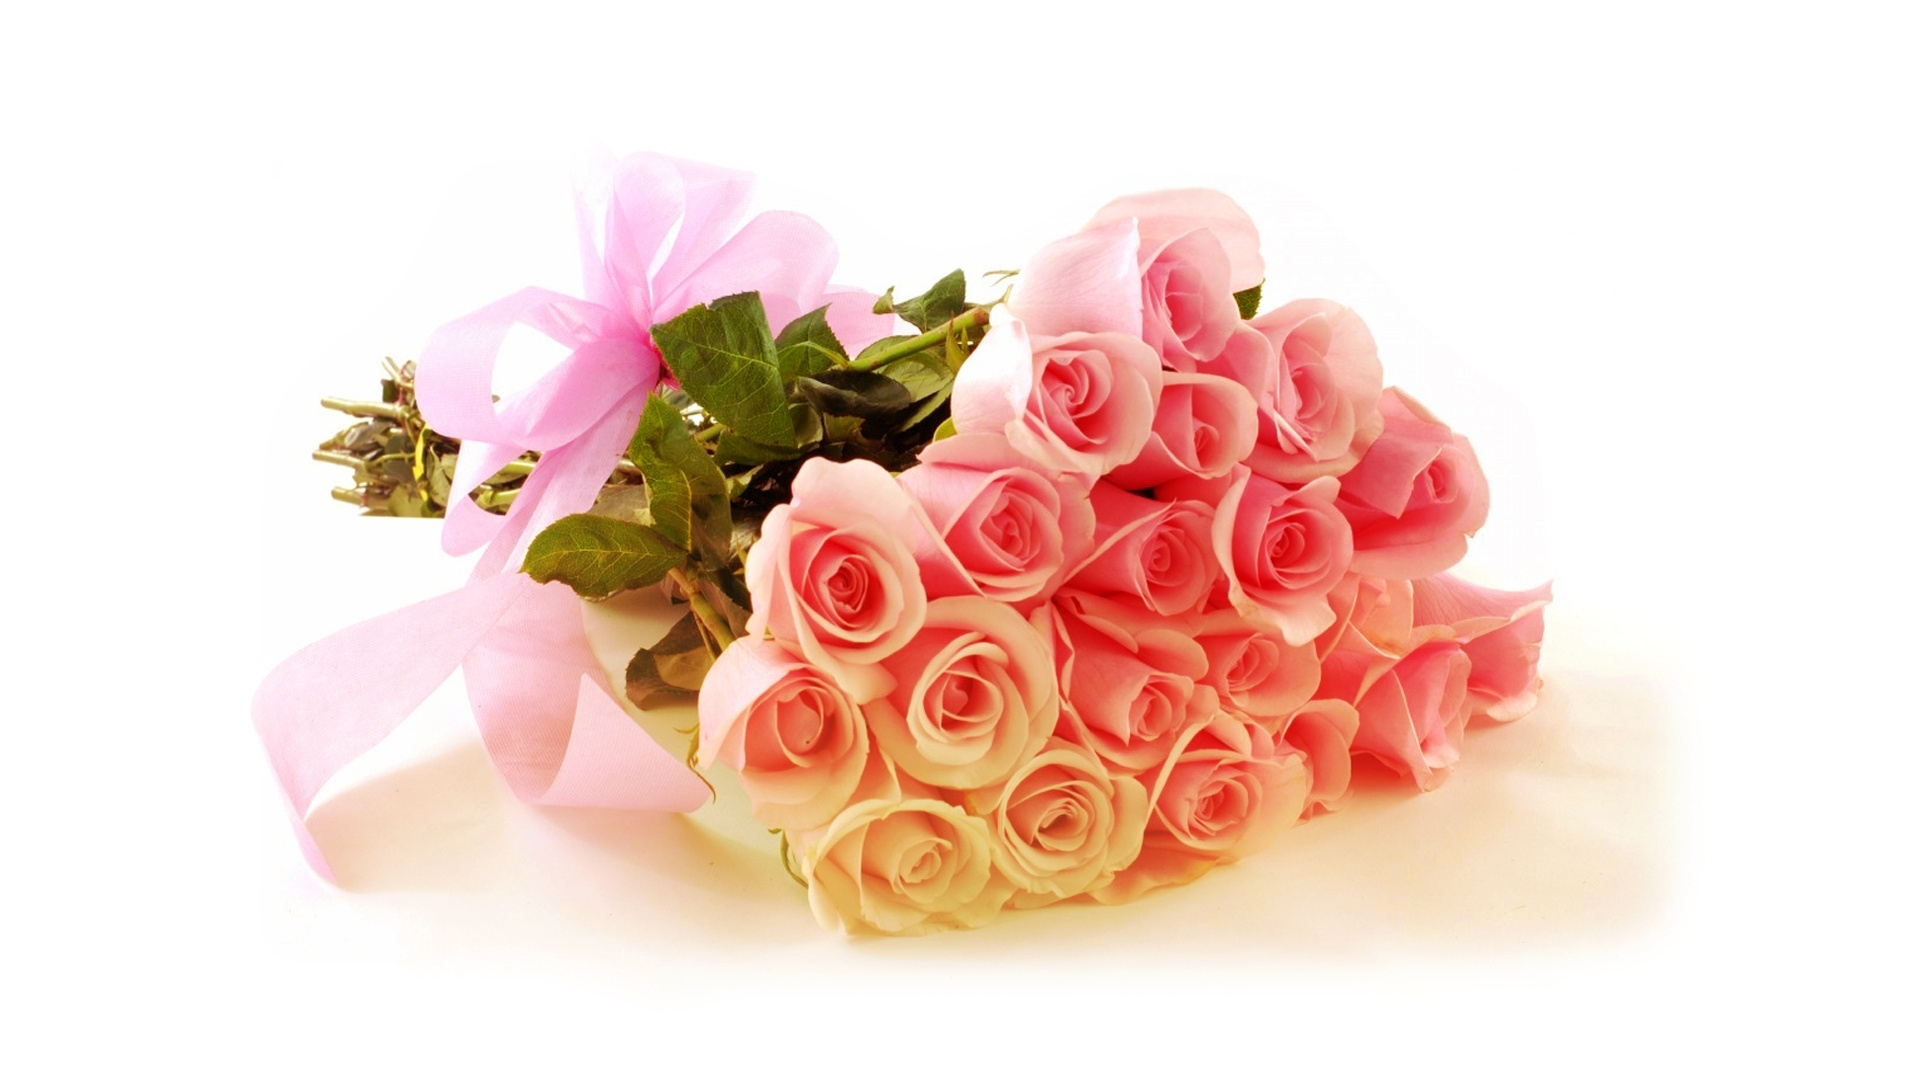 Flowers Bouquet Images High Quality 6 HD Wallpapers